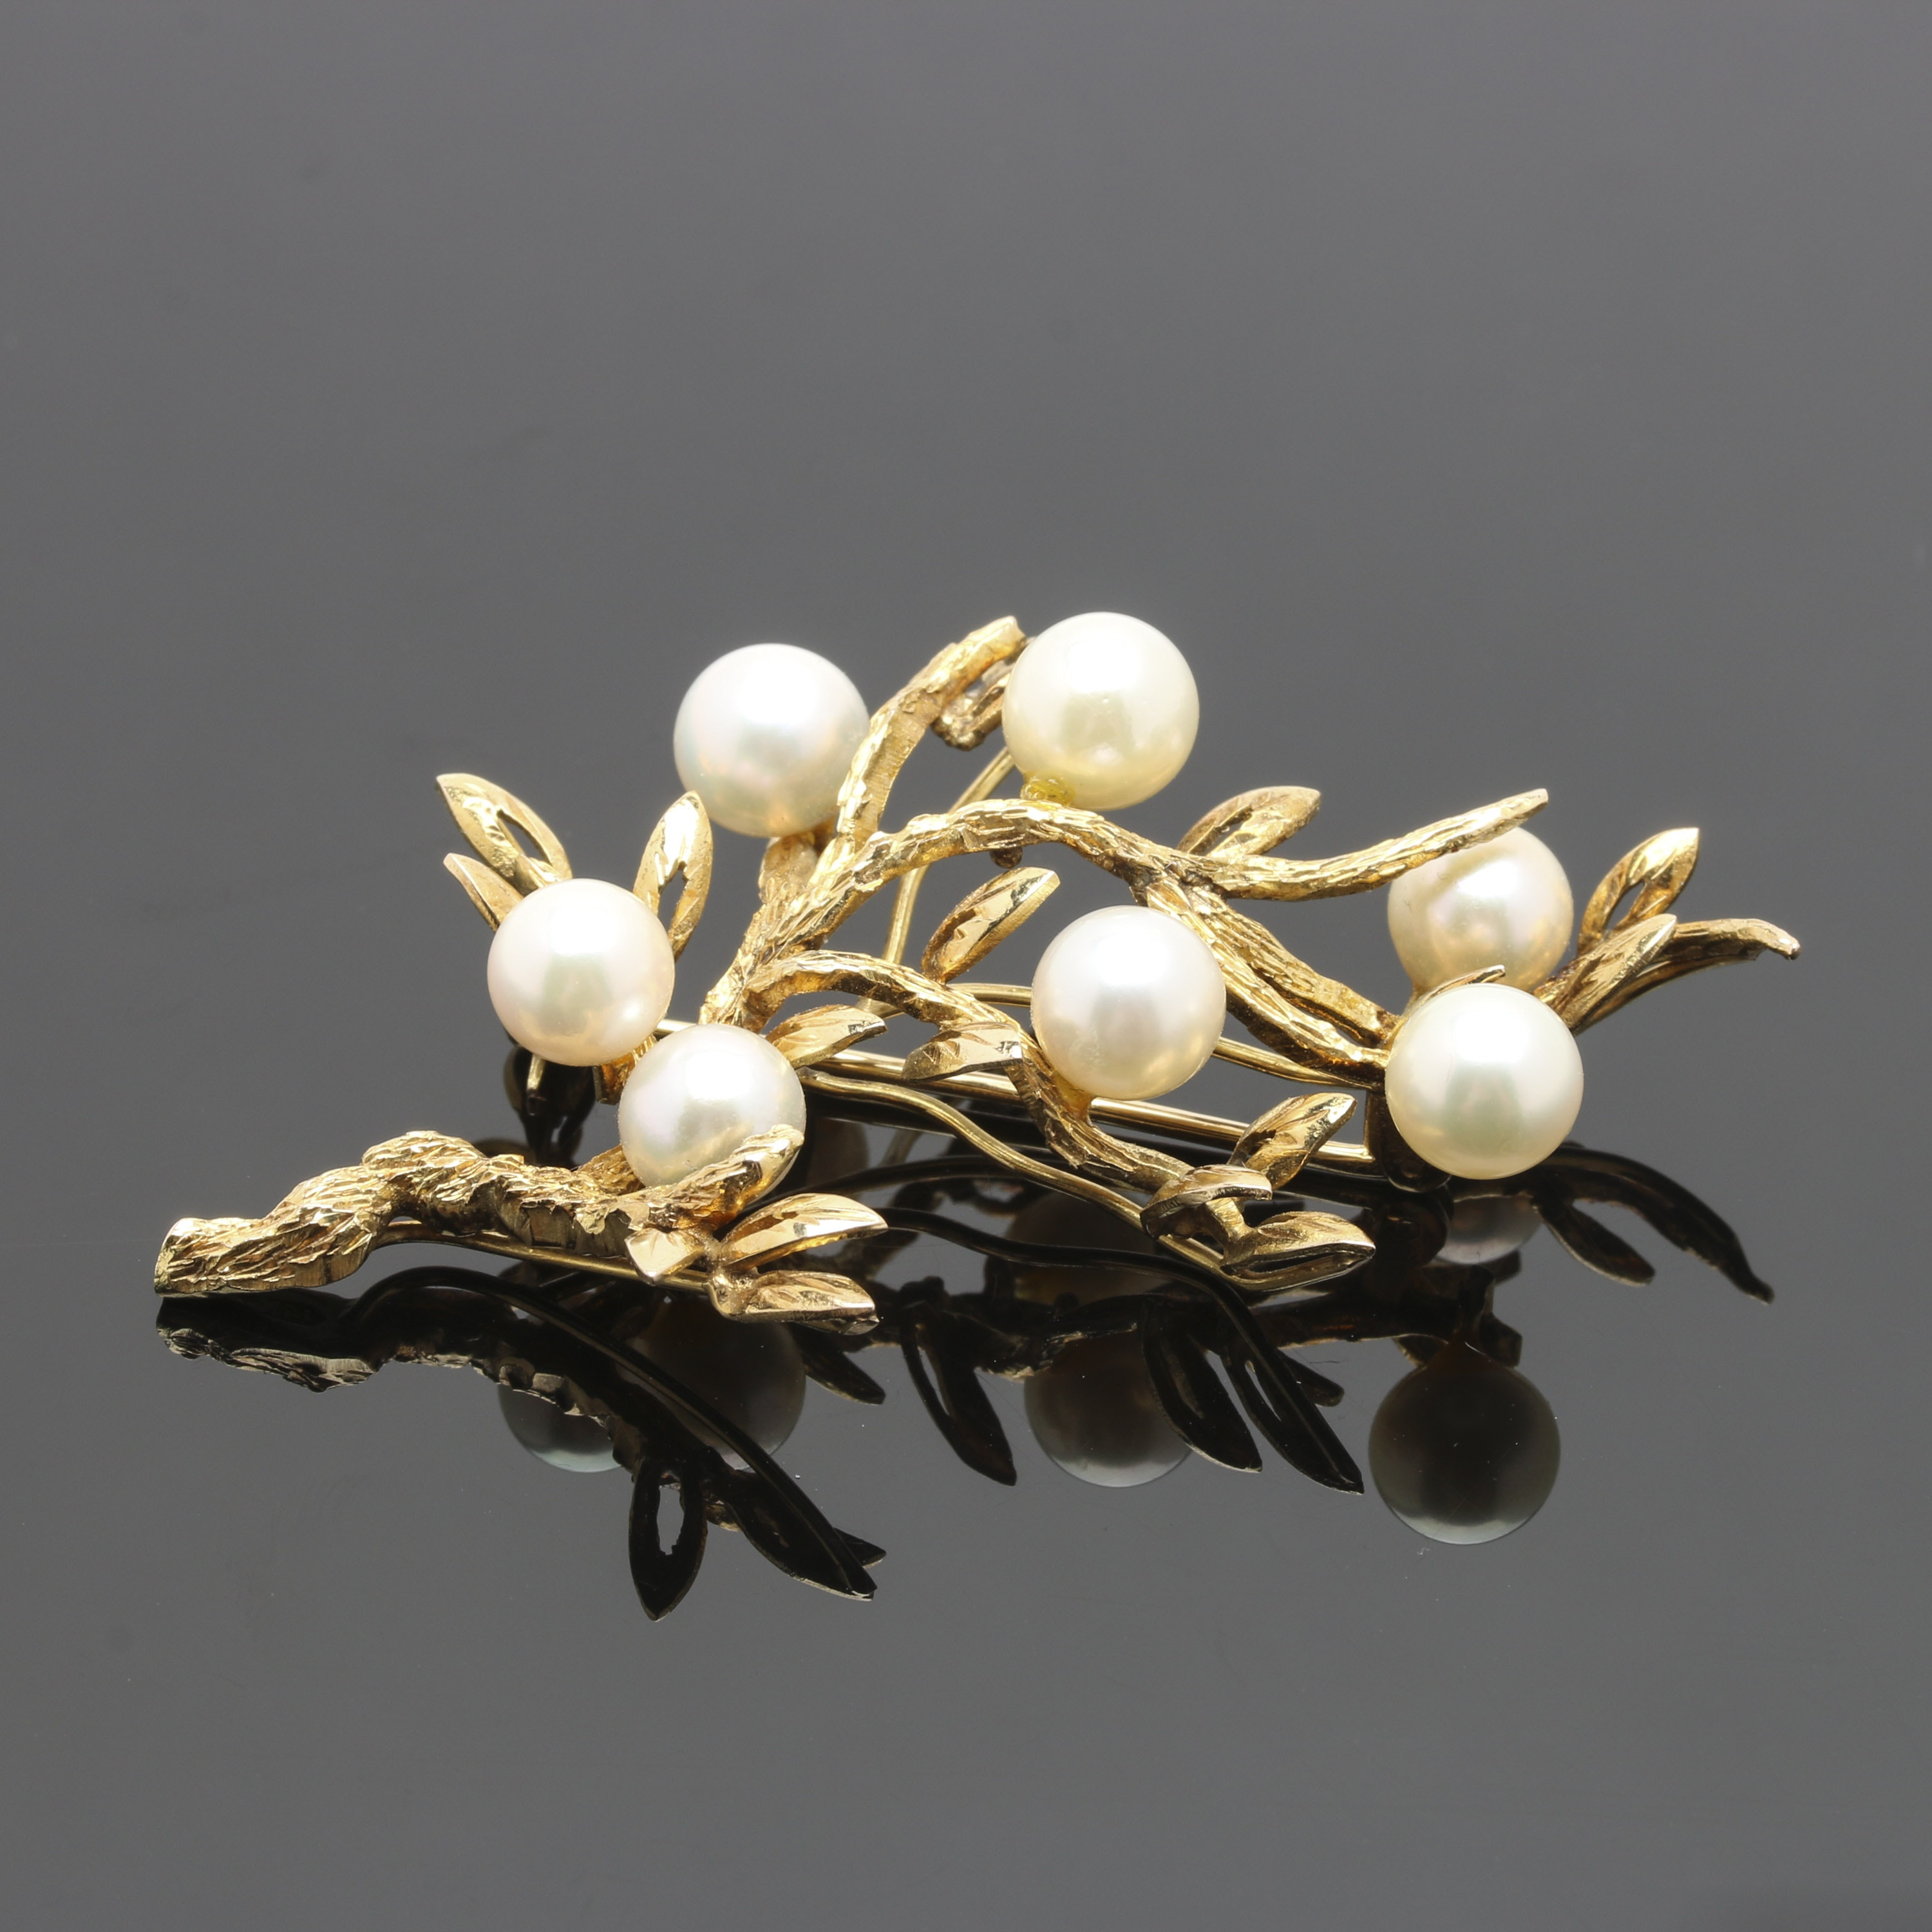 14K and 10K Yellow Gold Cultured Pearl Brooch